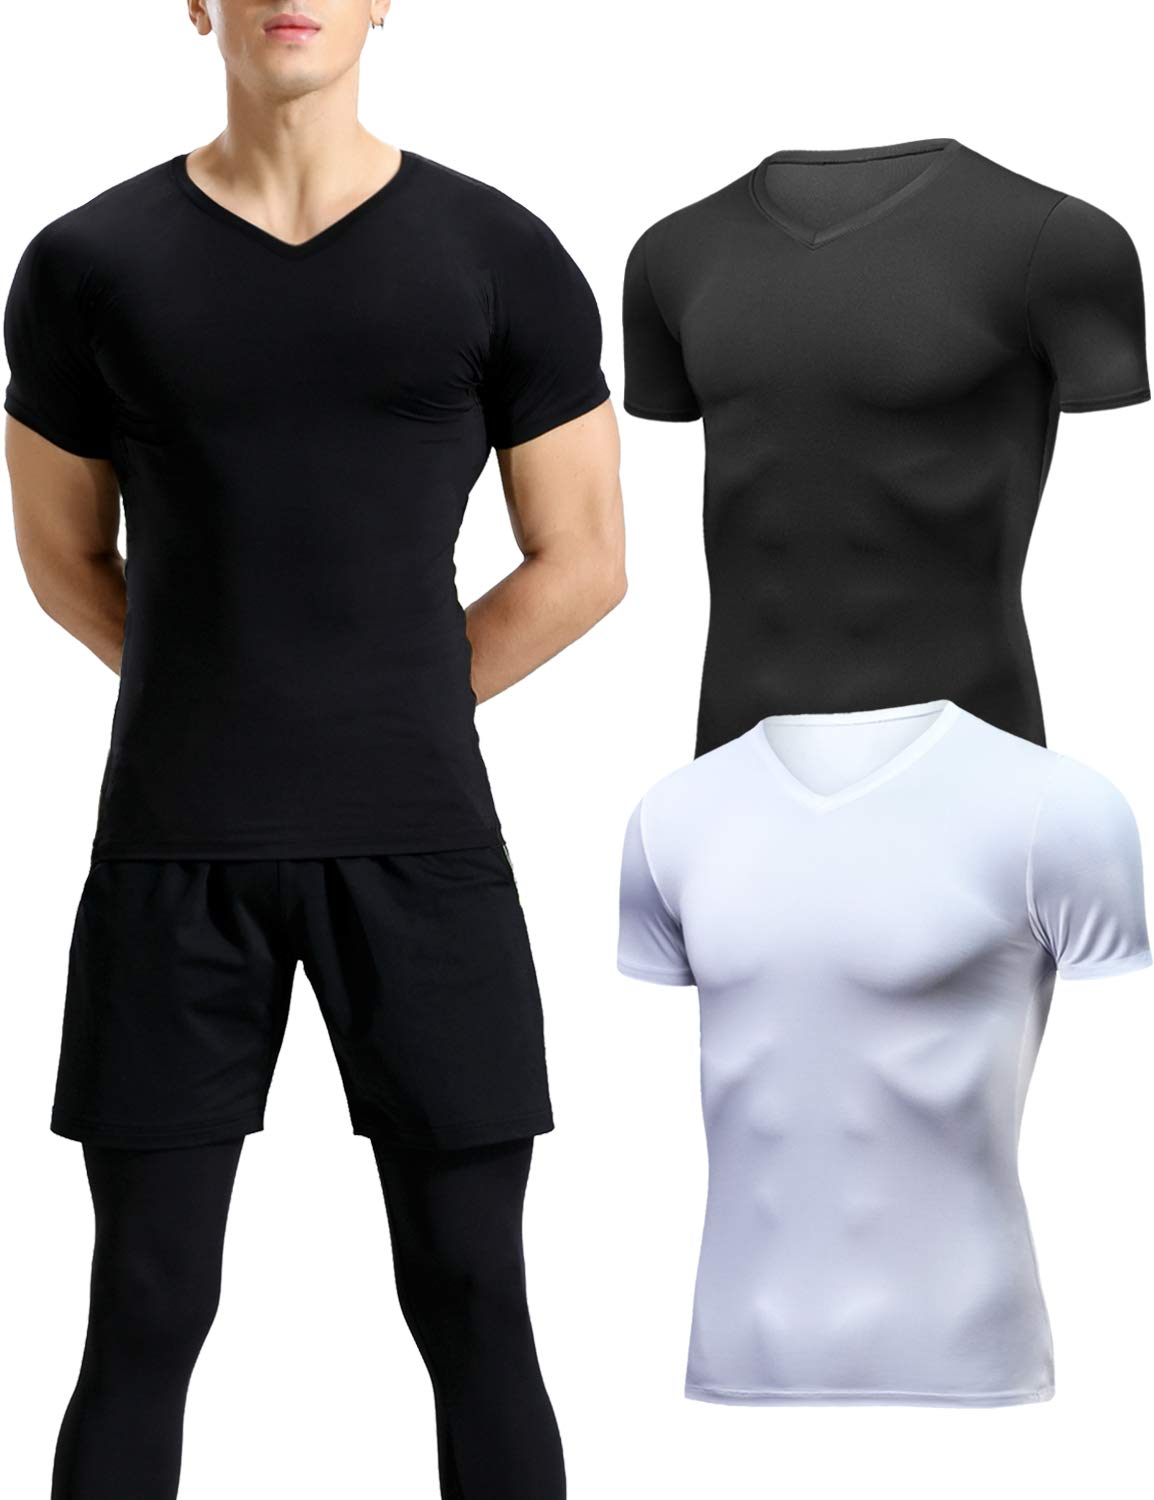 Lavento Men's Compression Shirts Cool Dry Short-Sleeve Workout Undershirts (2 Pack-V Neck Black/White,Small)